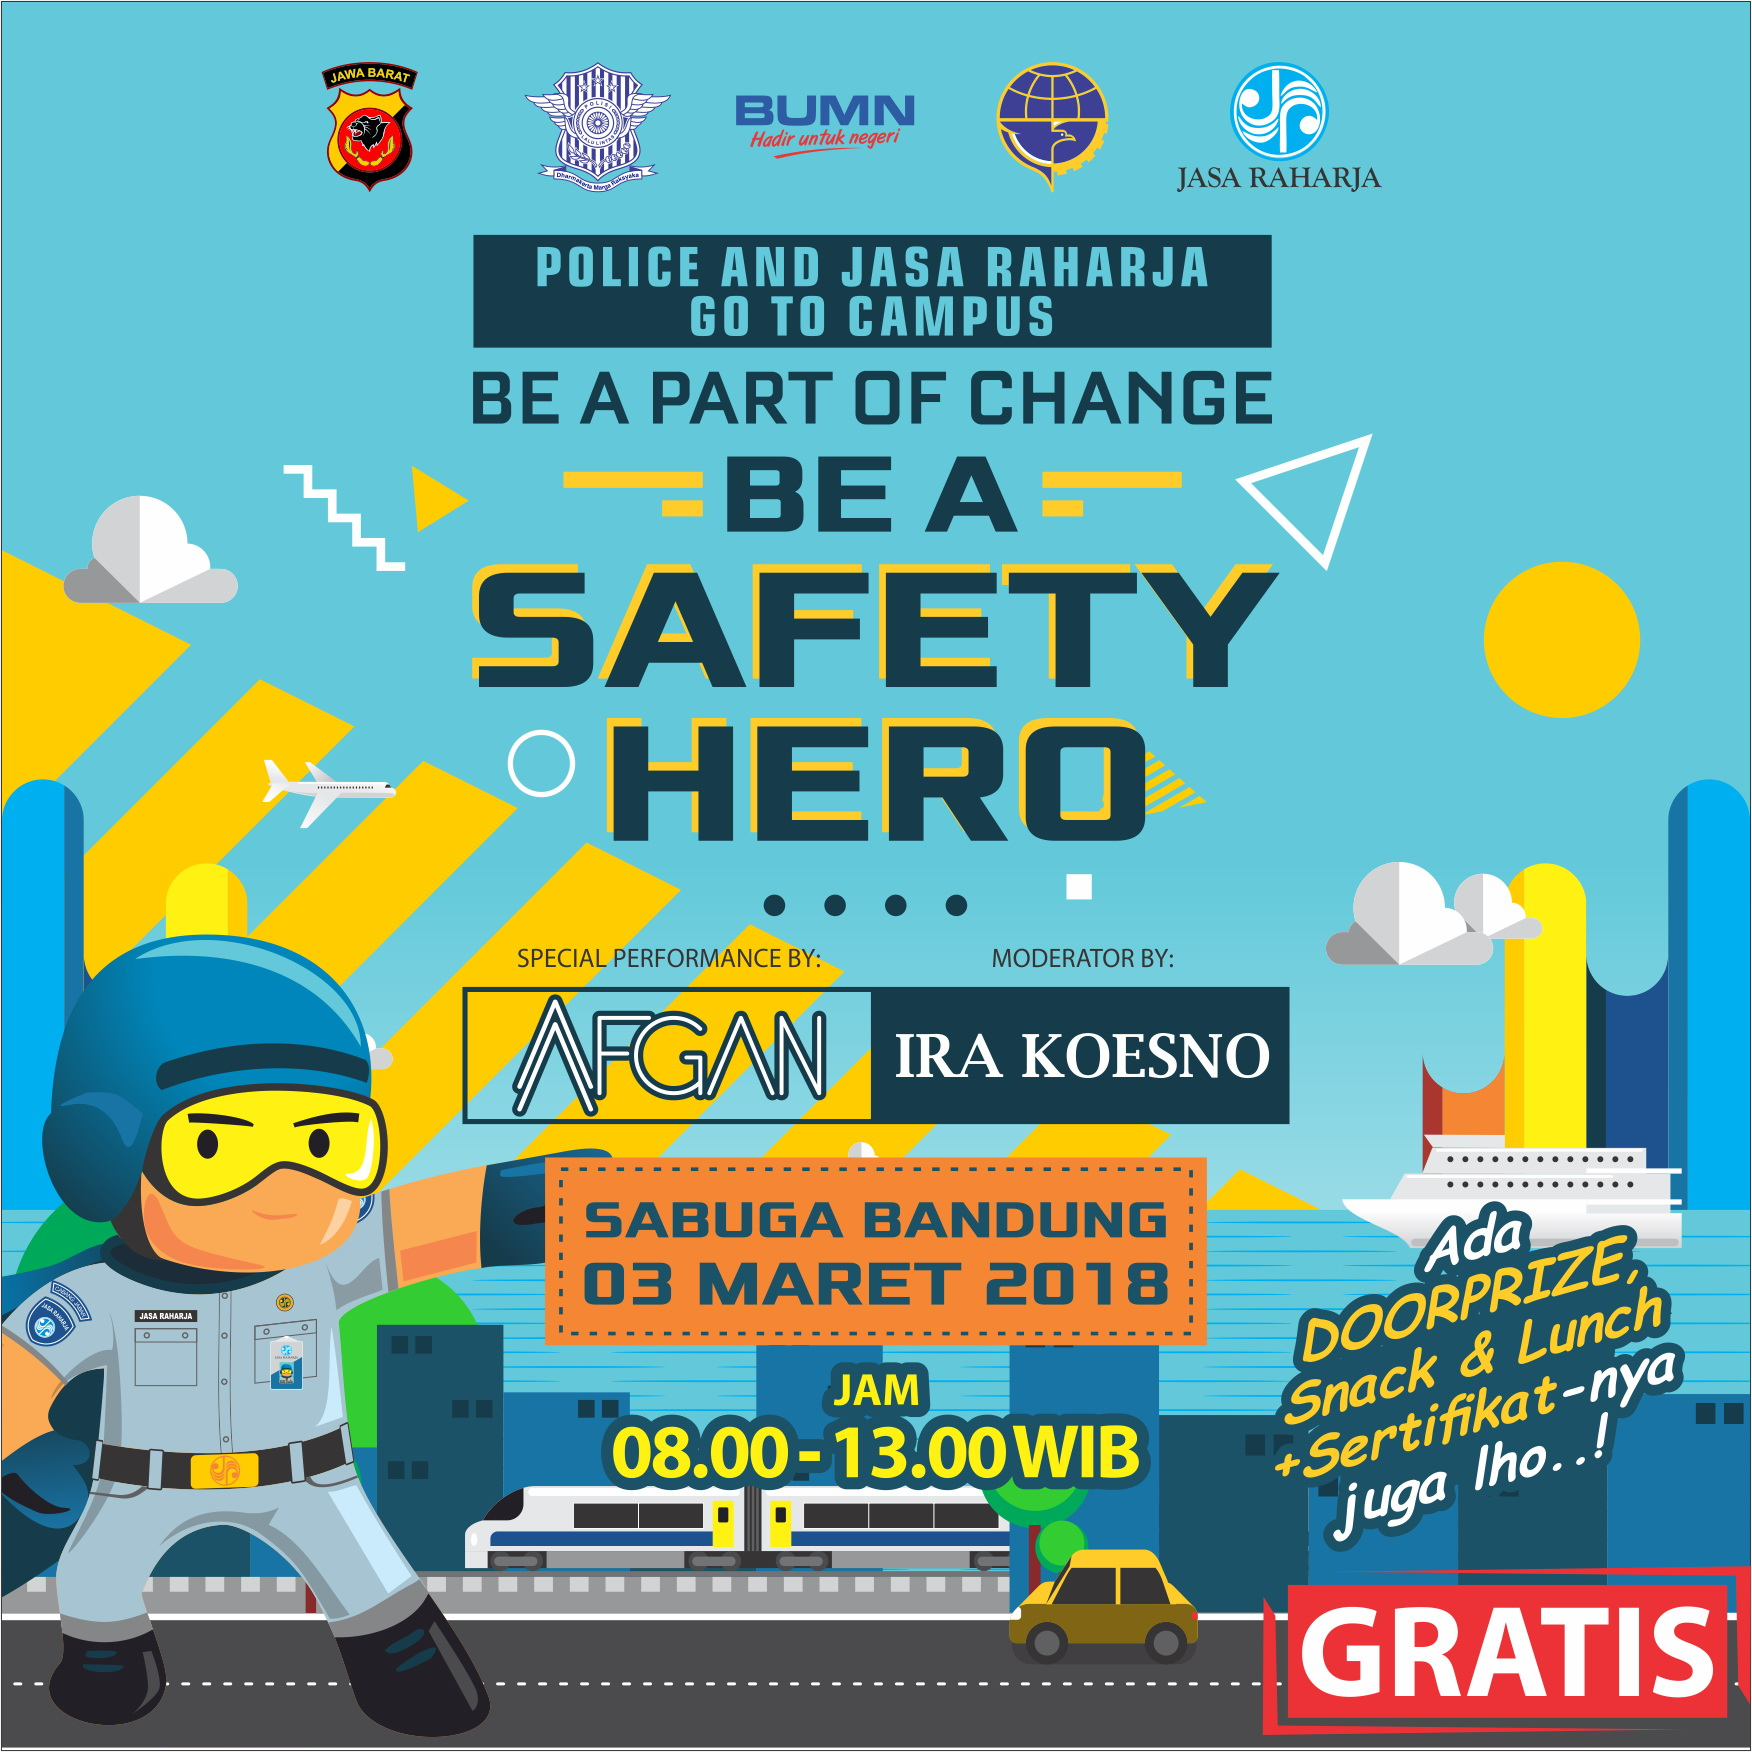 Police and Jasa Raharja Go To Campus Be A Part Of Change Be A Safety Hero